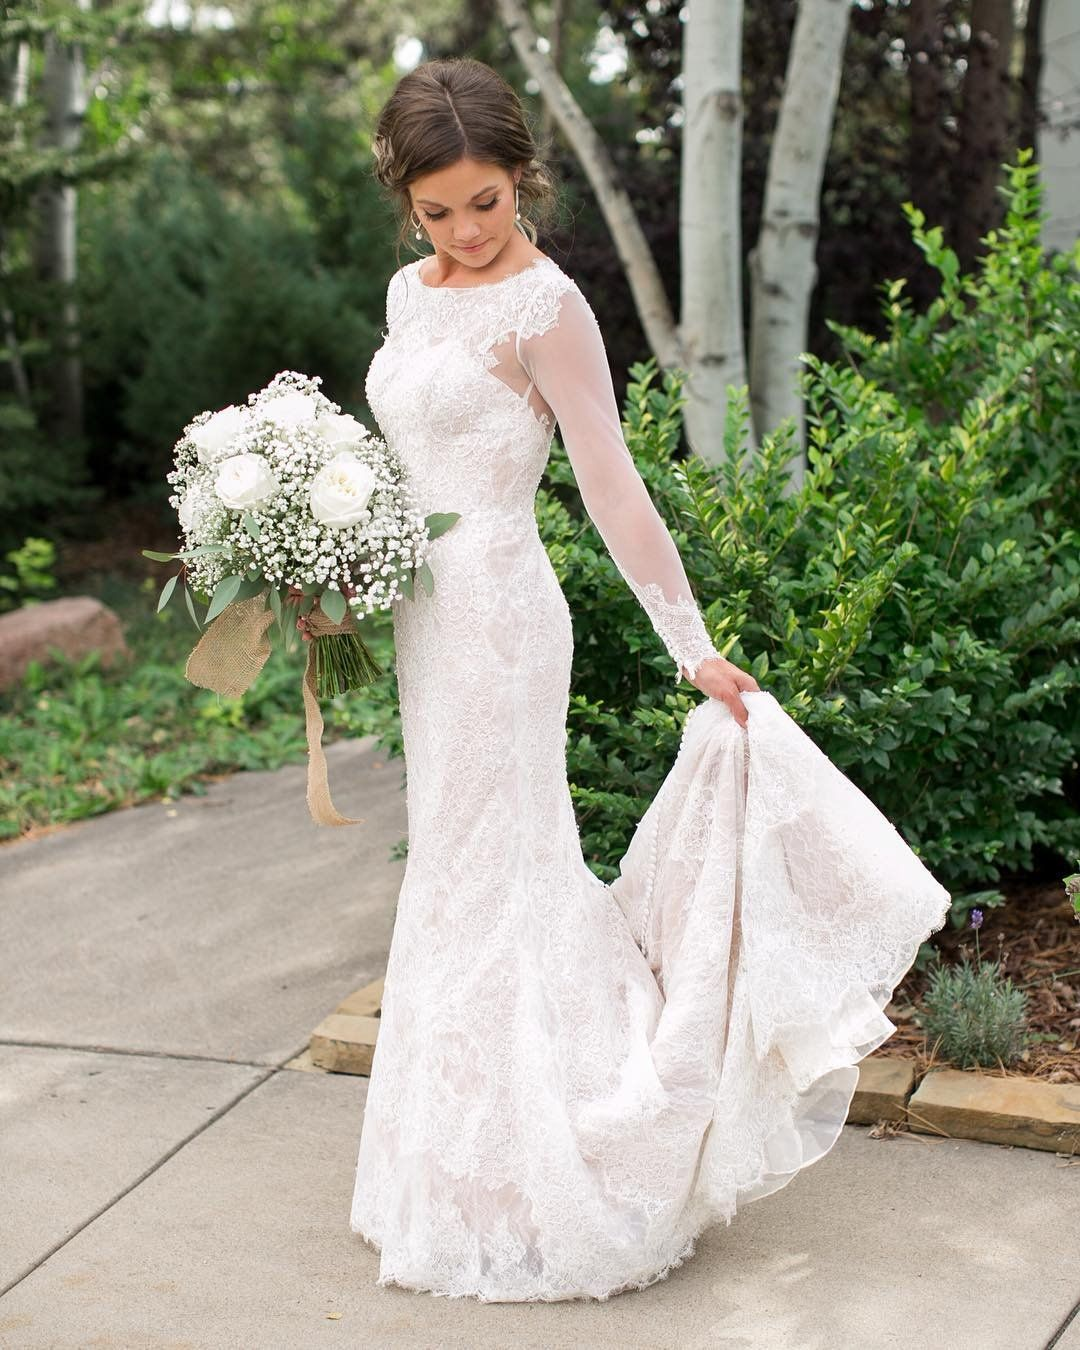 David S Bridal Bride Carlee In A Long Sleeve Lace And Illusion Sheath Wedding Dress By Classic Wedding Dress Davids Bridal Wedding Dresses Bridal Shower Dress